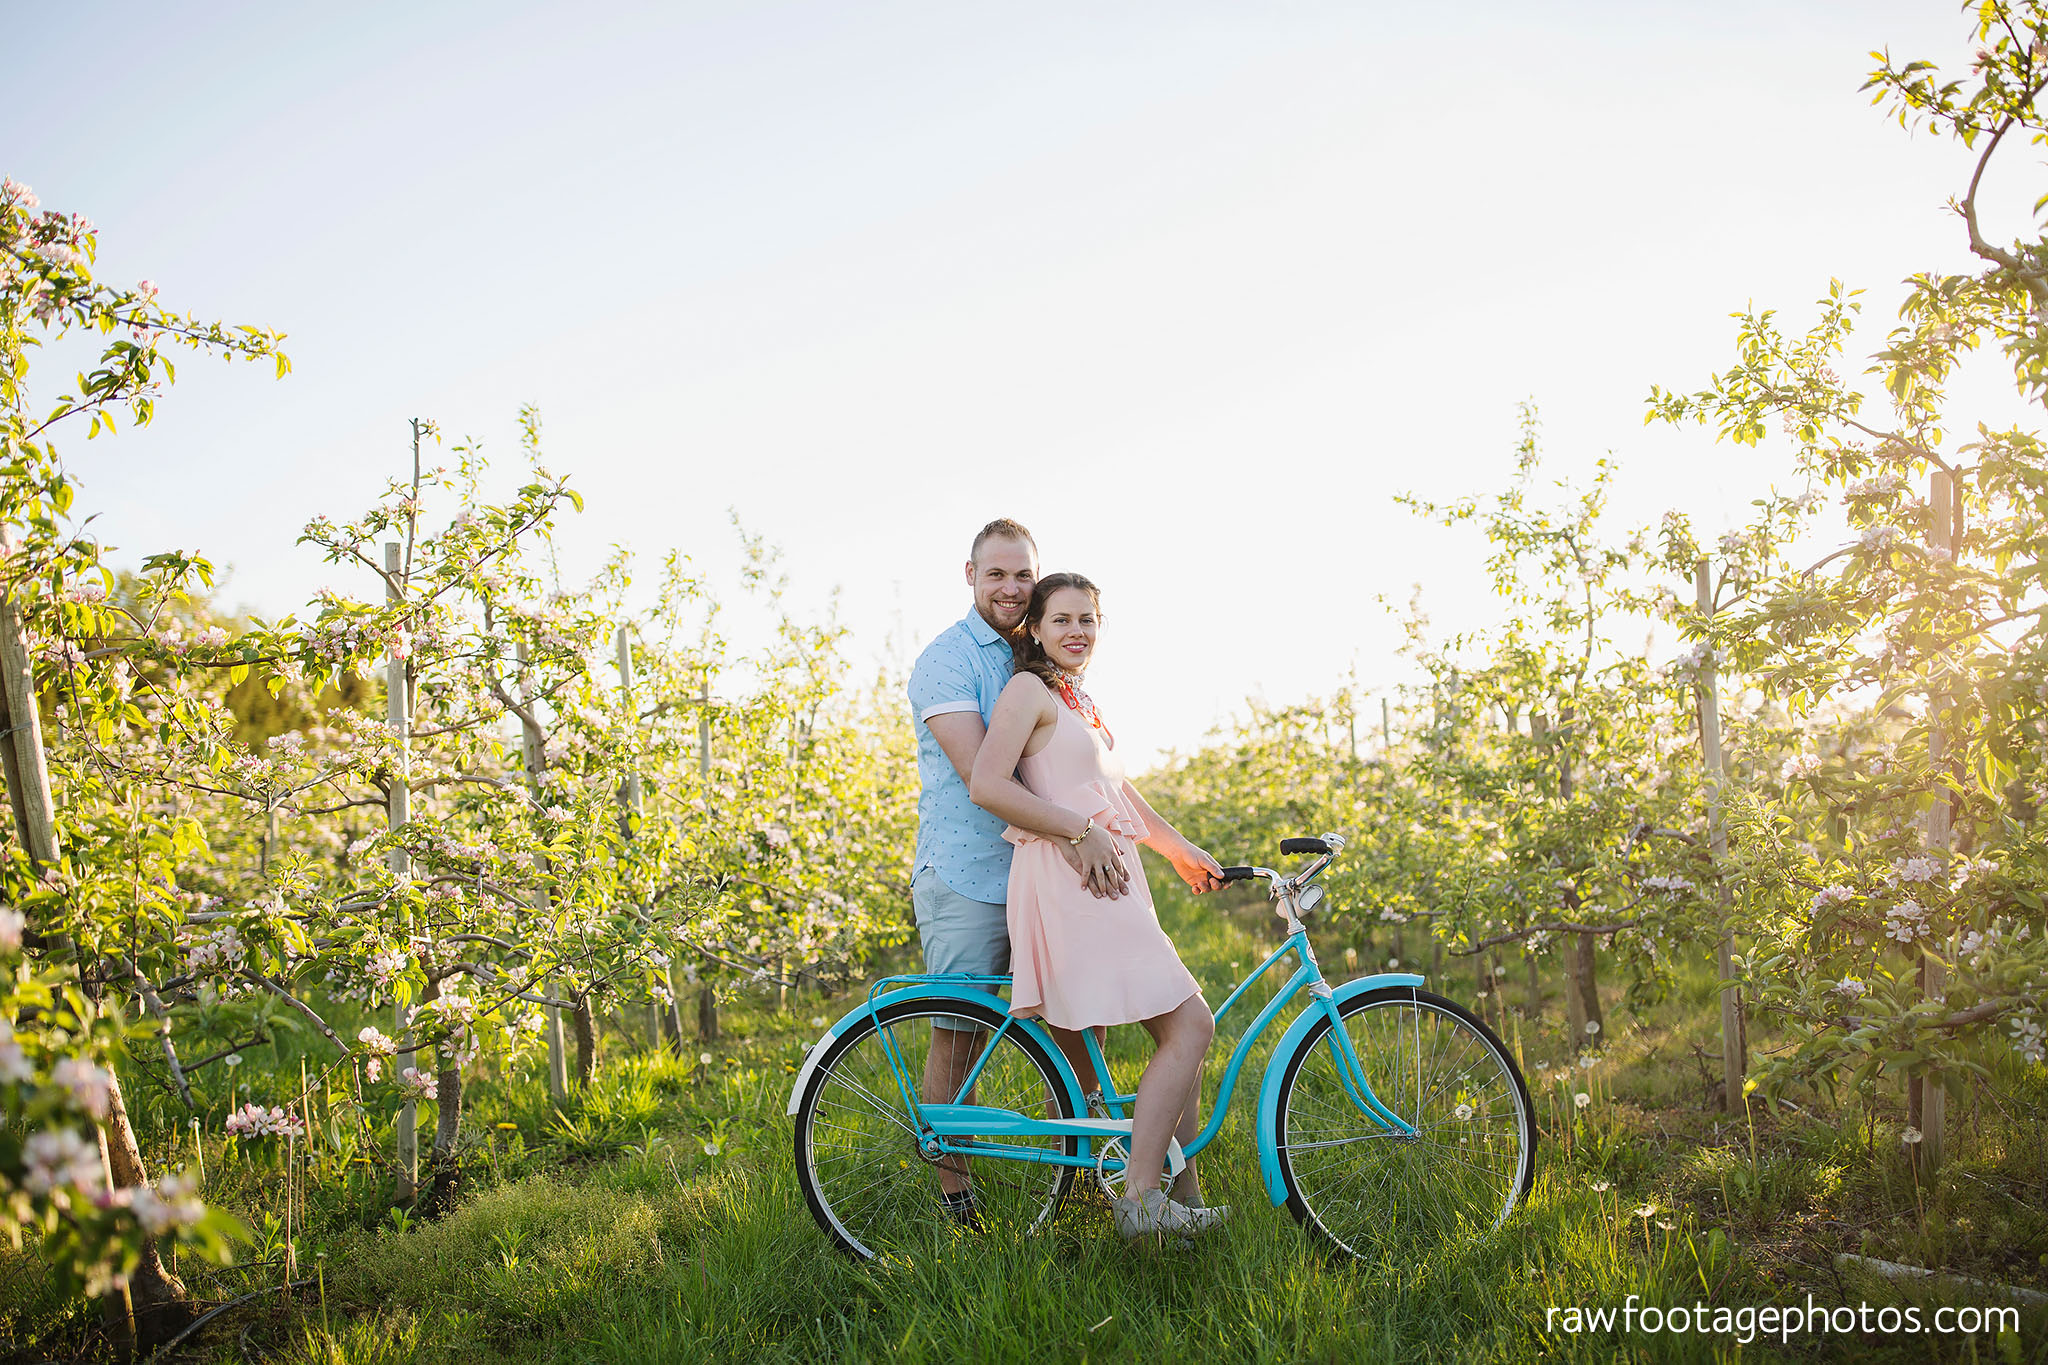 london_ontario_wedding_photographer-raw_footage_photography-engagement_session-airport_session-airplane-balloons-apple_orchard-spring_blooms-apple_blossoms024.jpg